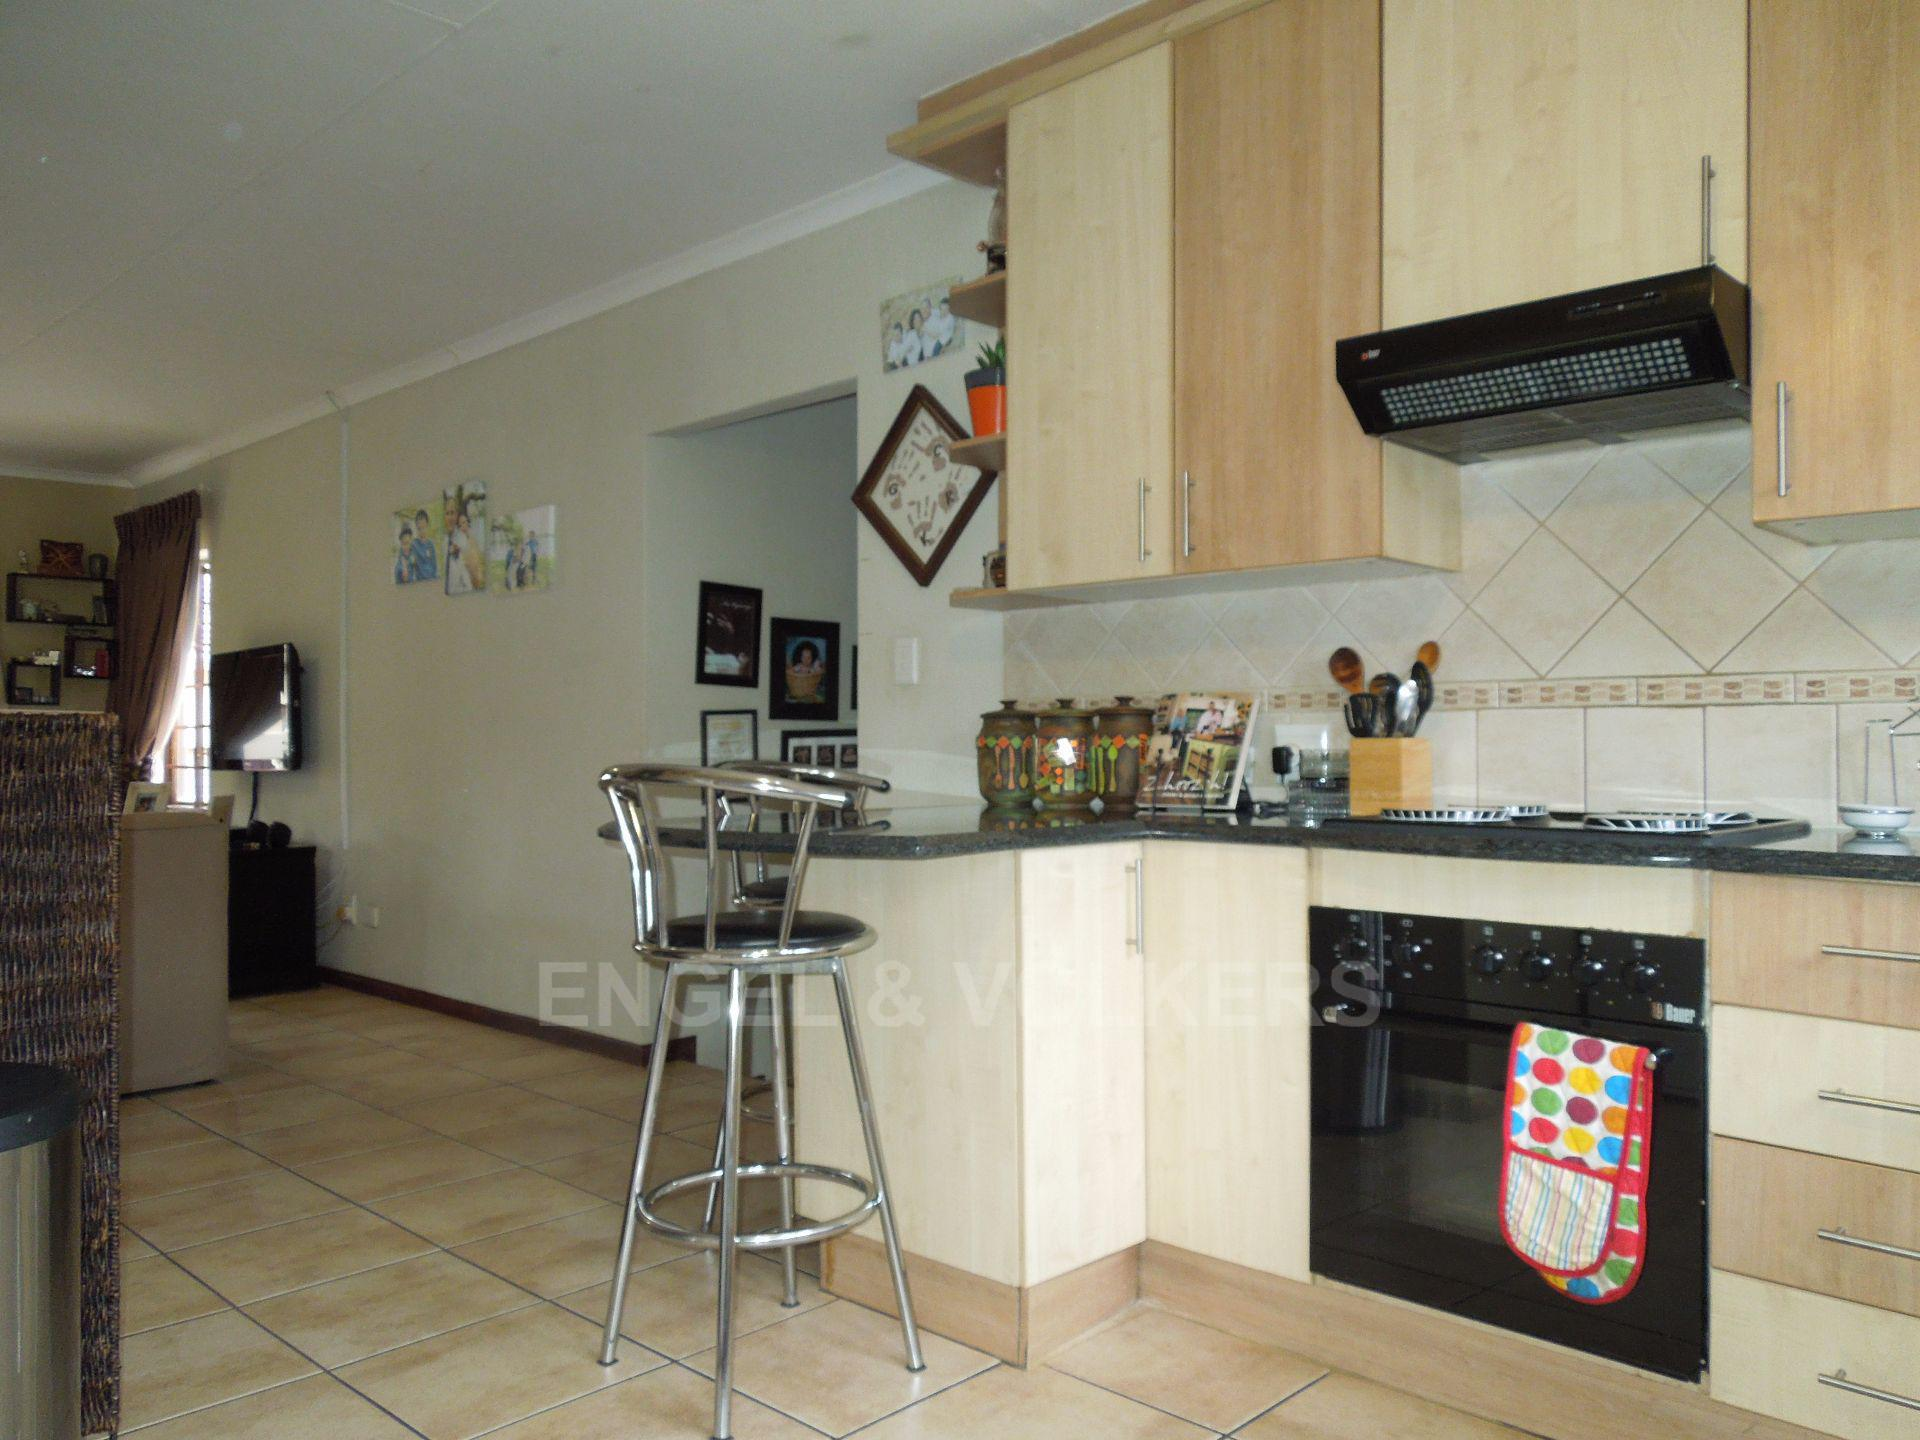 Chancliff A H property for sale. Ref No: 13536551. Picture no 7